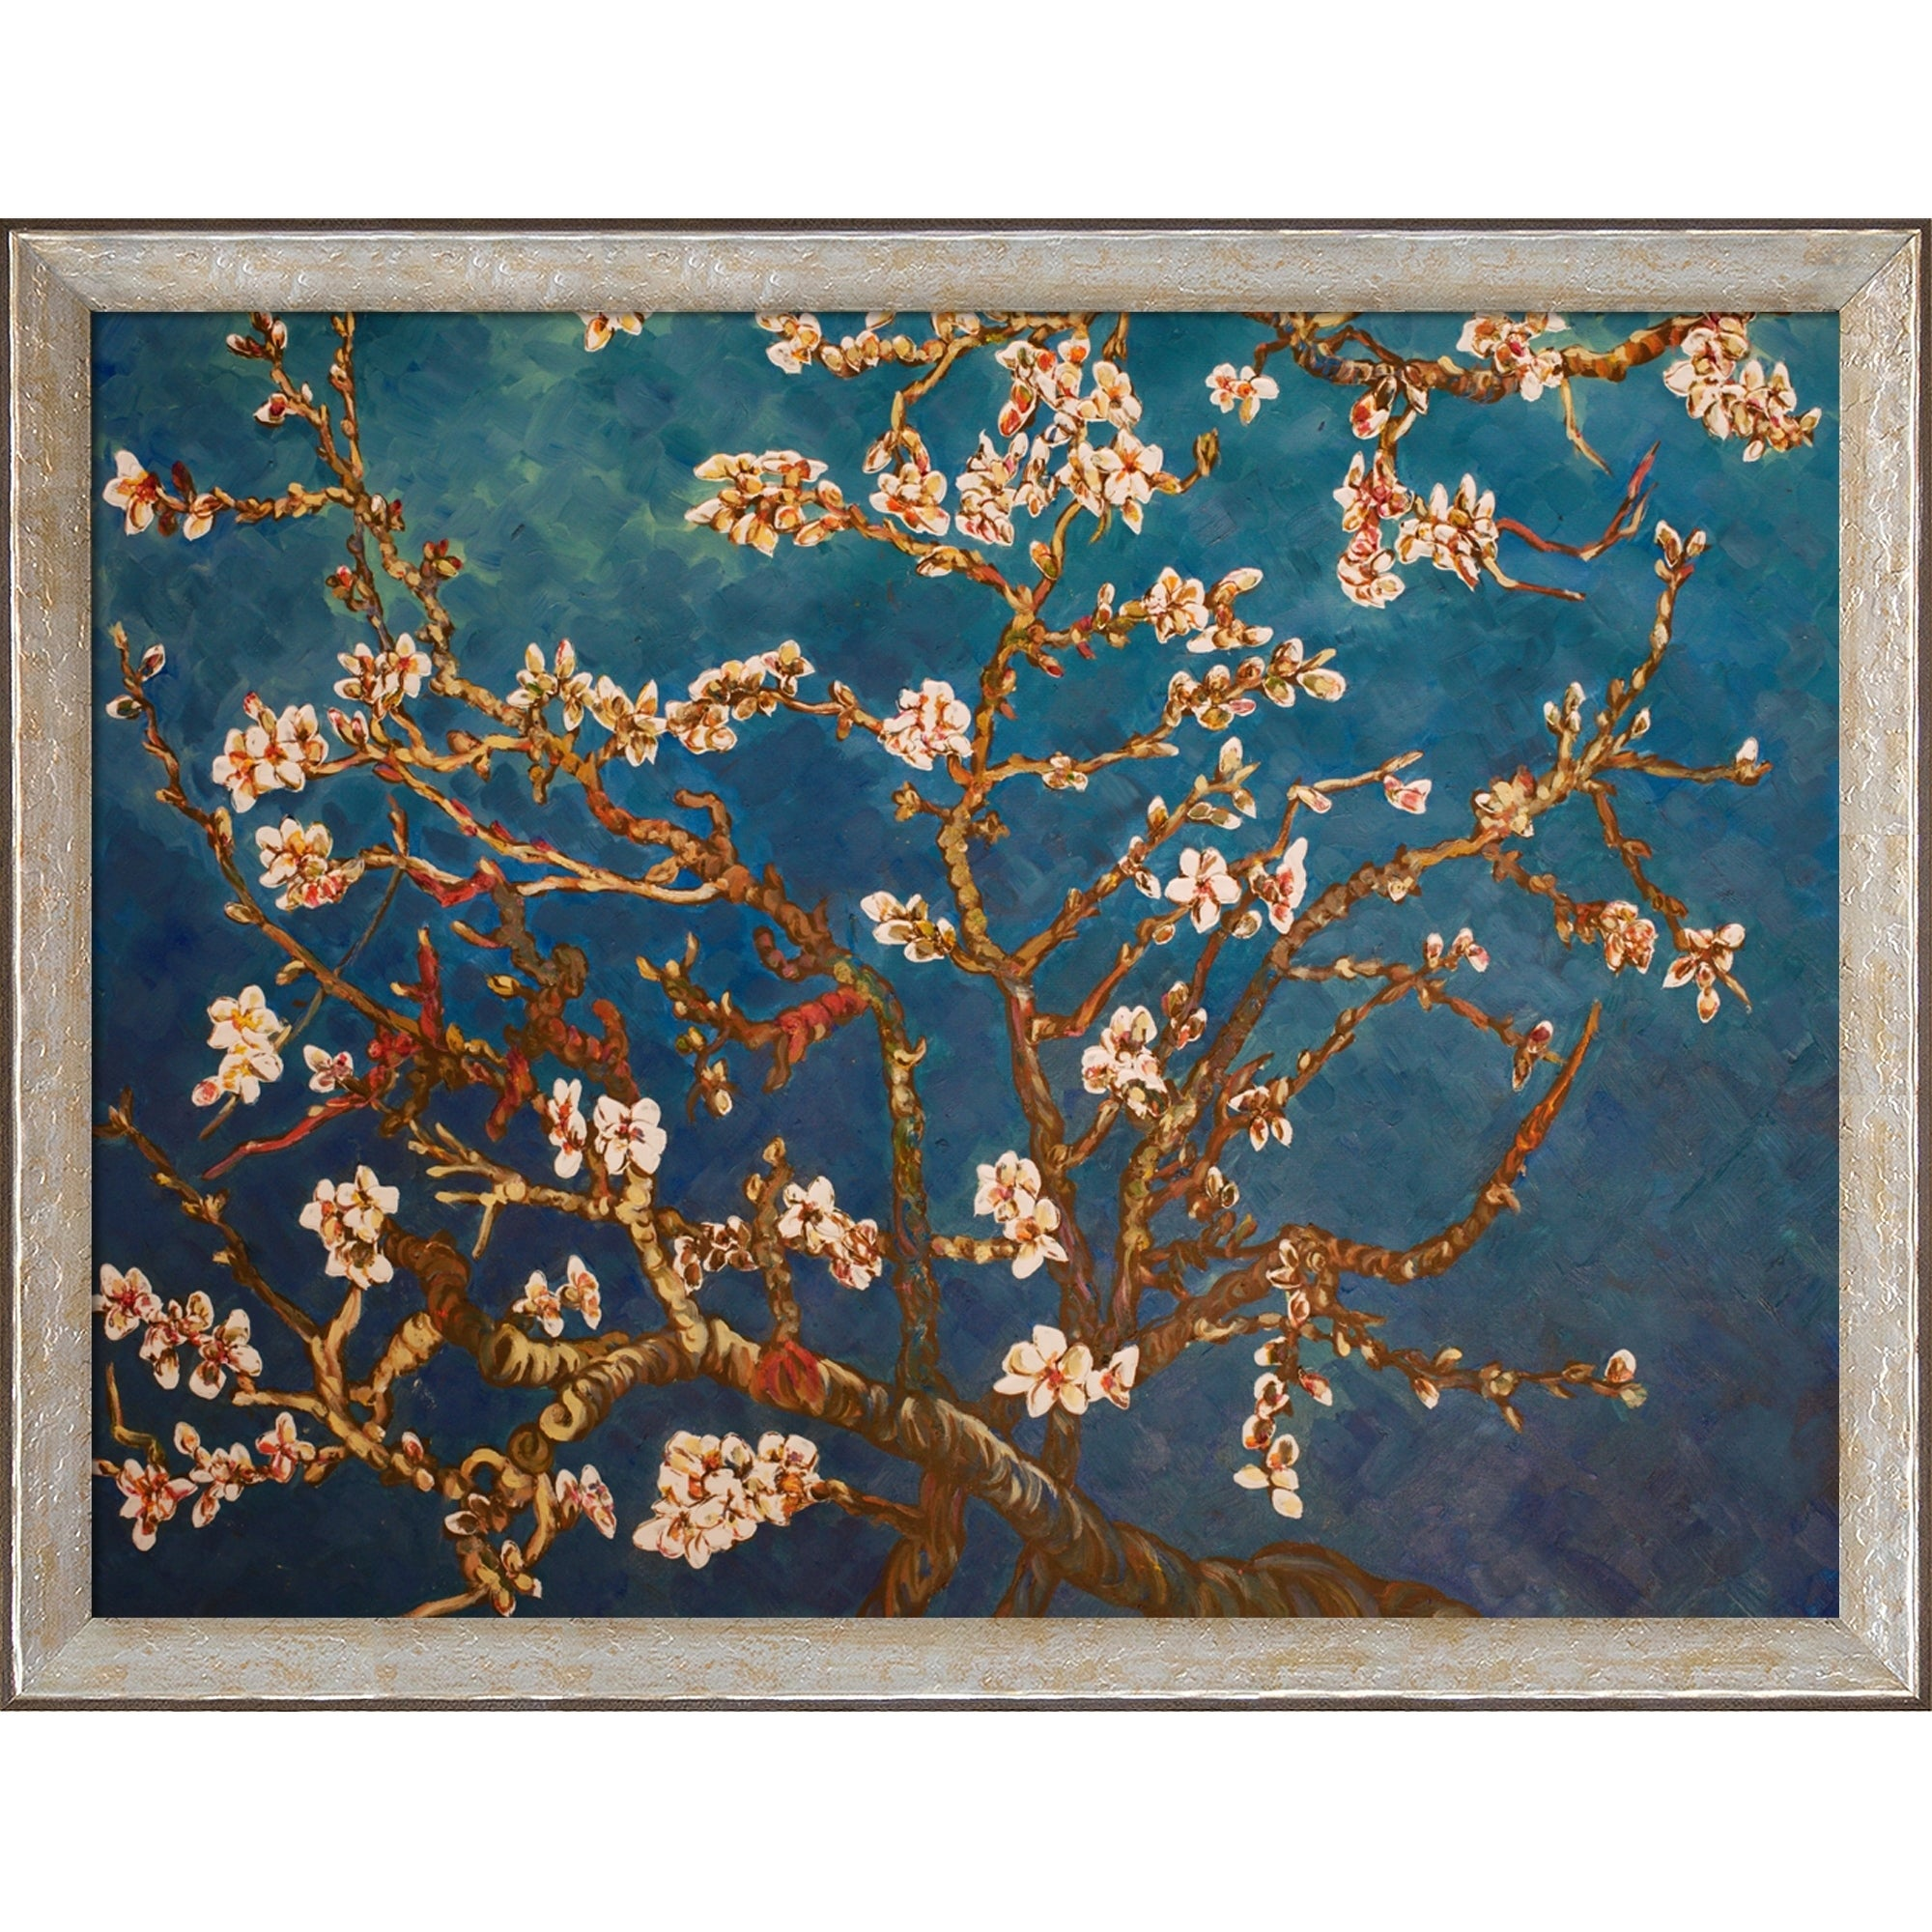 La Pastiche Branches Of An Almond Tree In Blossom By Vincent Van Gogh With Silver Luna Frame Oil Painting Wall Art 44 X 34 On Sale Overstock 28491524